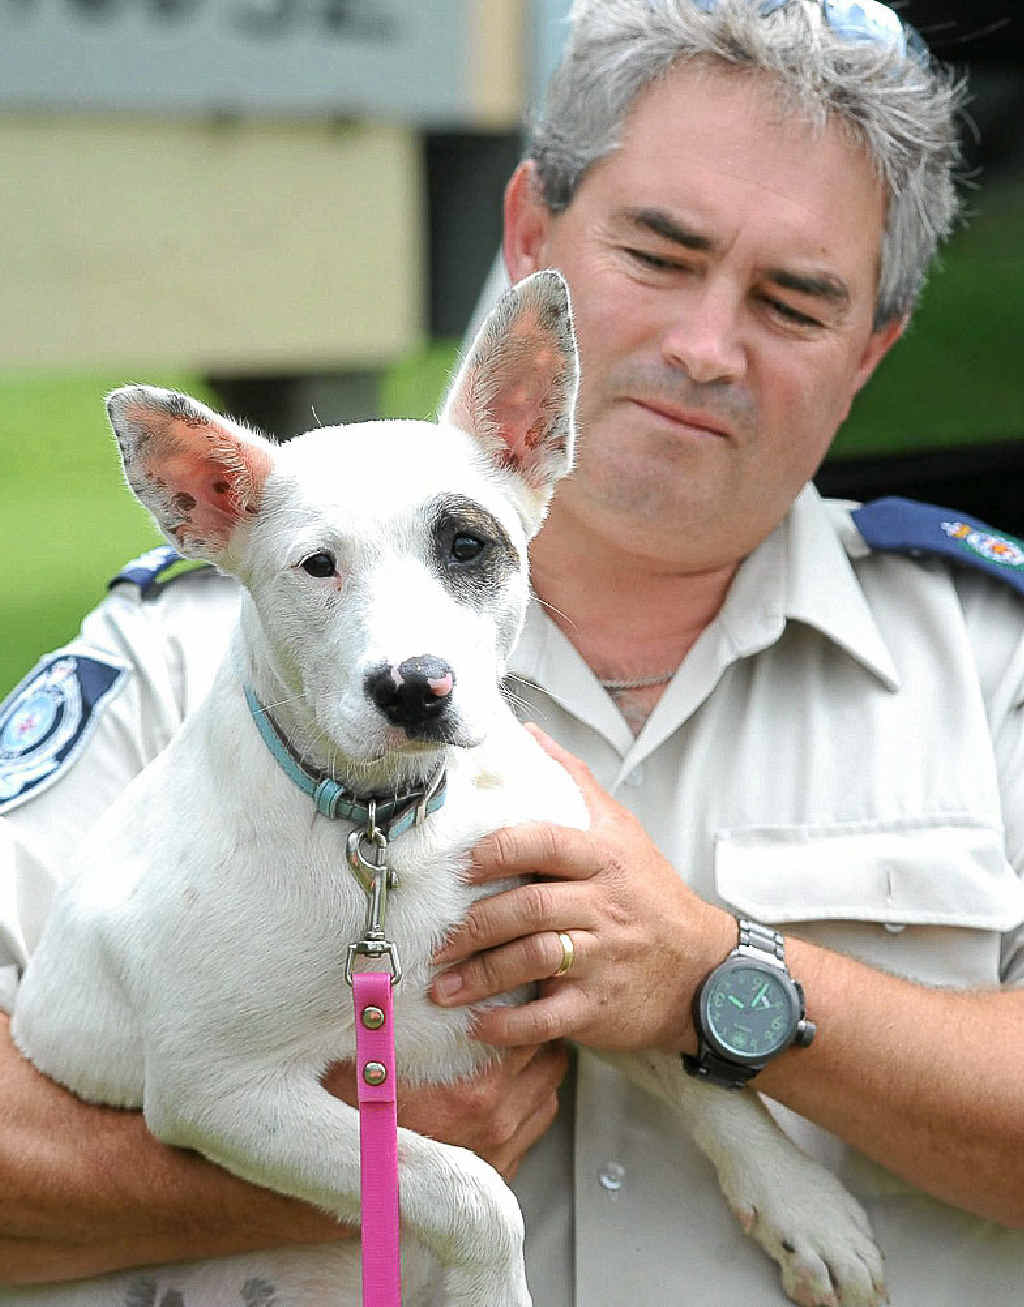 RSPCA regional inspector Alistair Hills and the puppy Roxy.